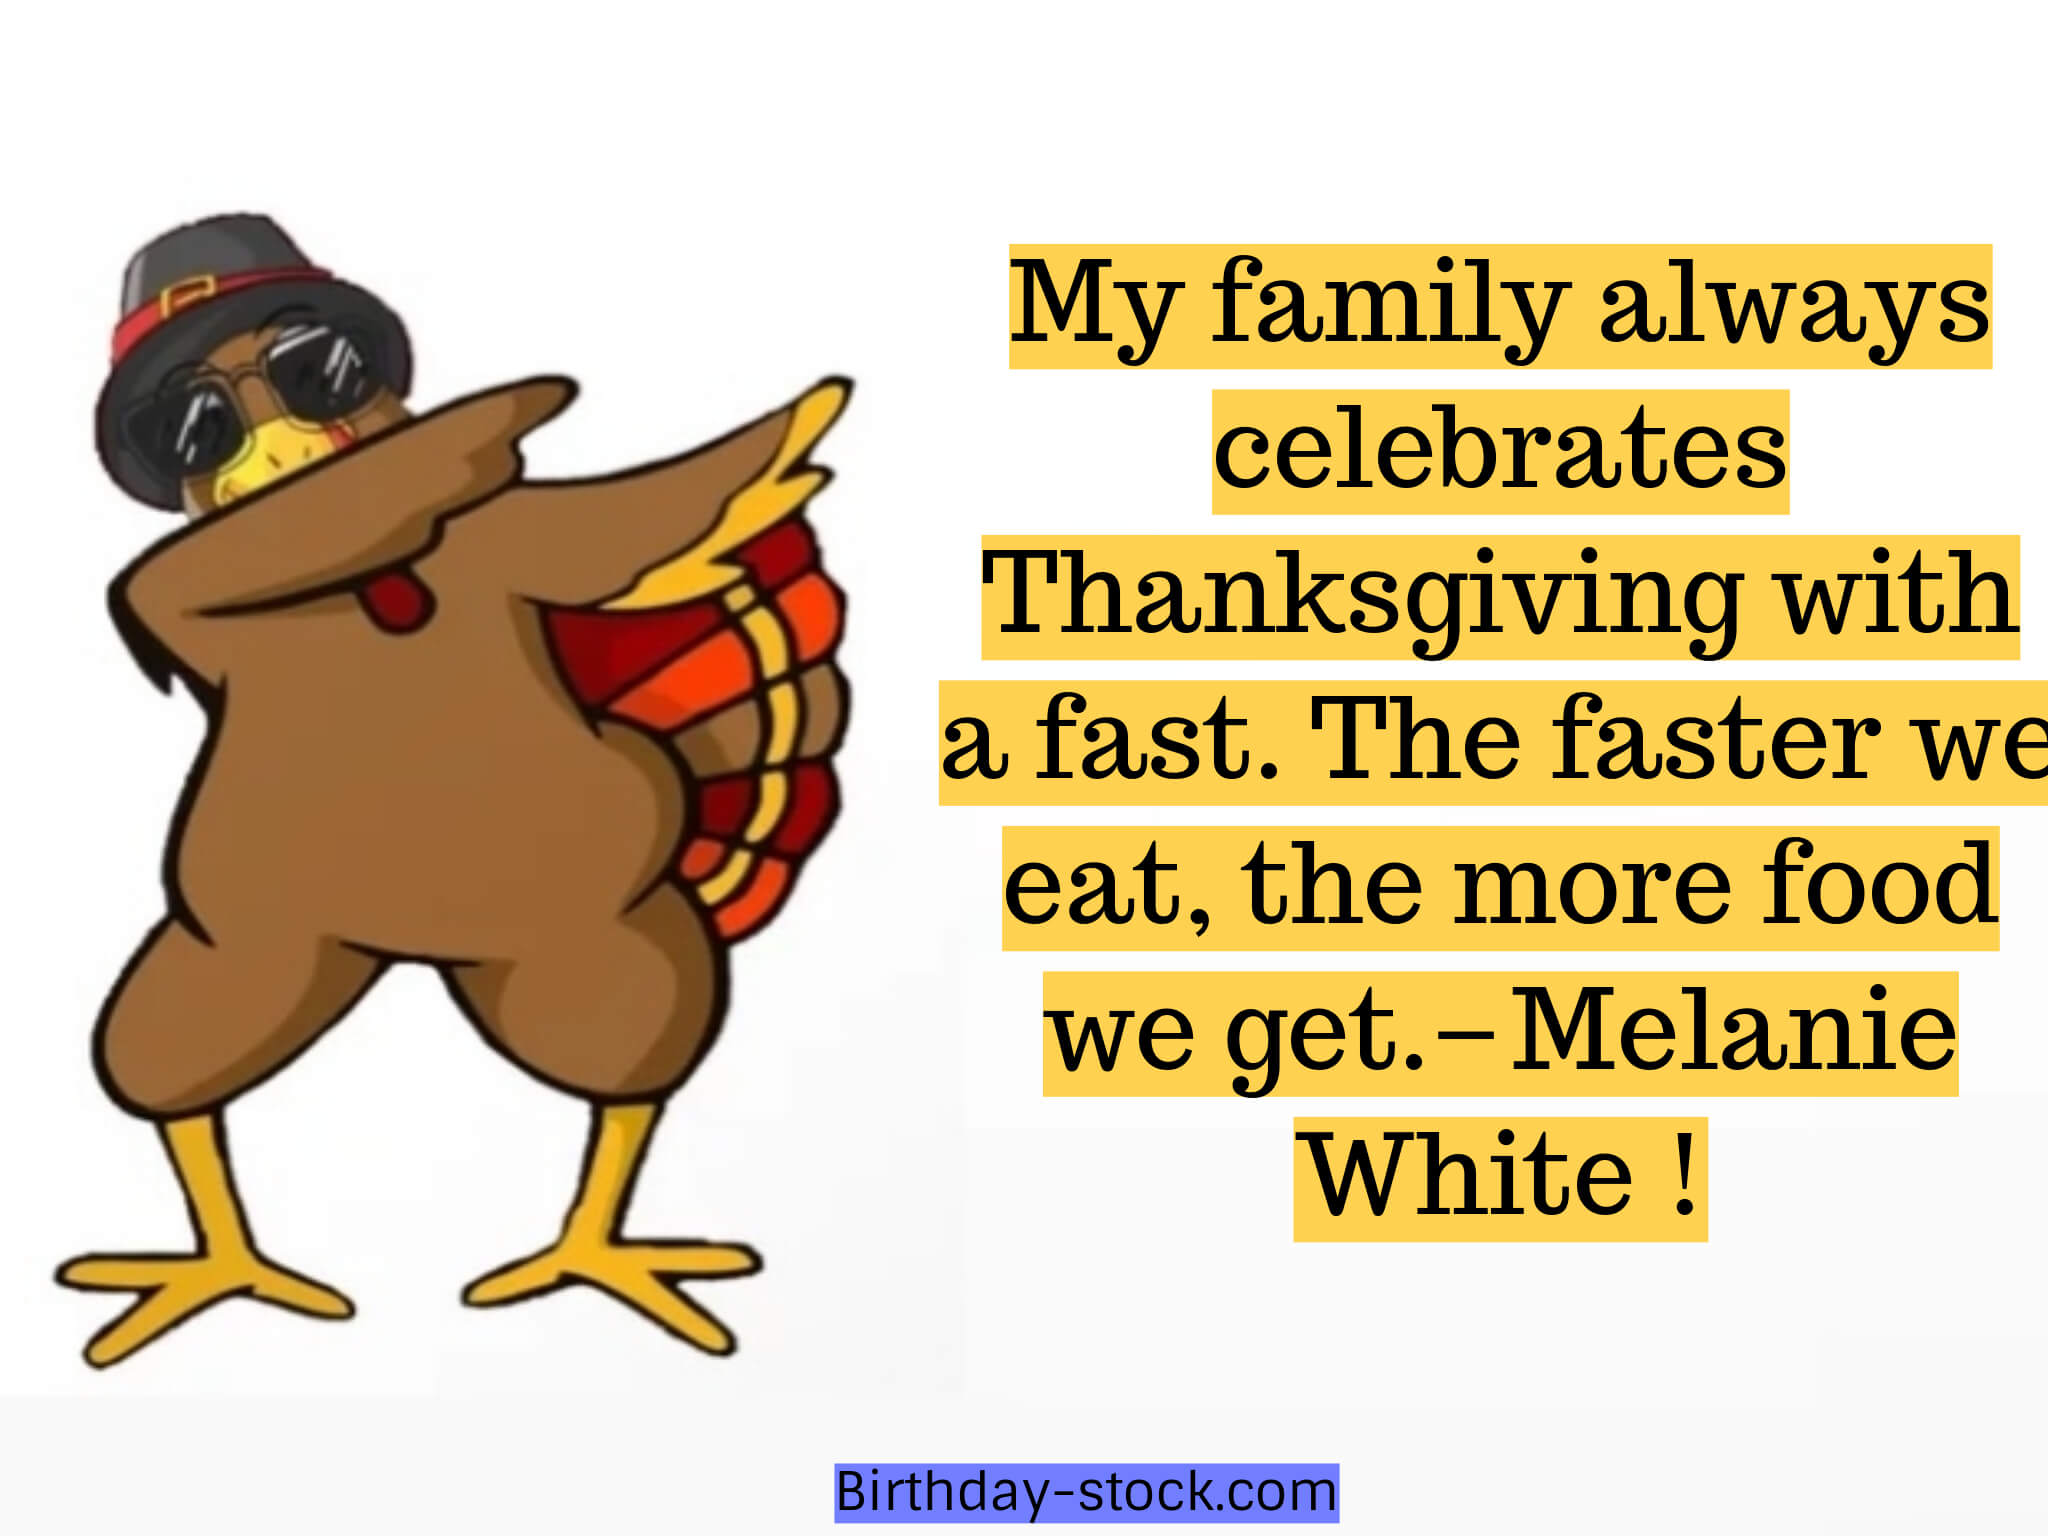 Funny Thanksgiving Turkey Pictures 2019